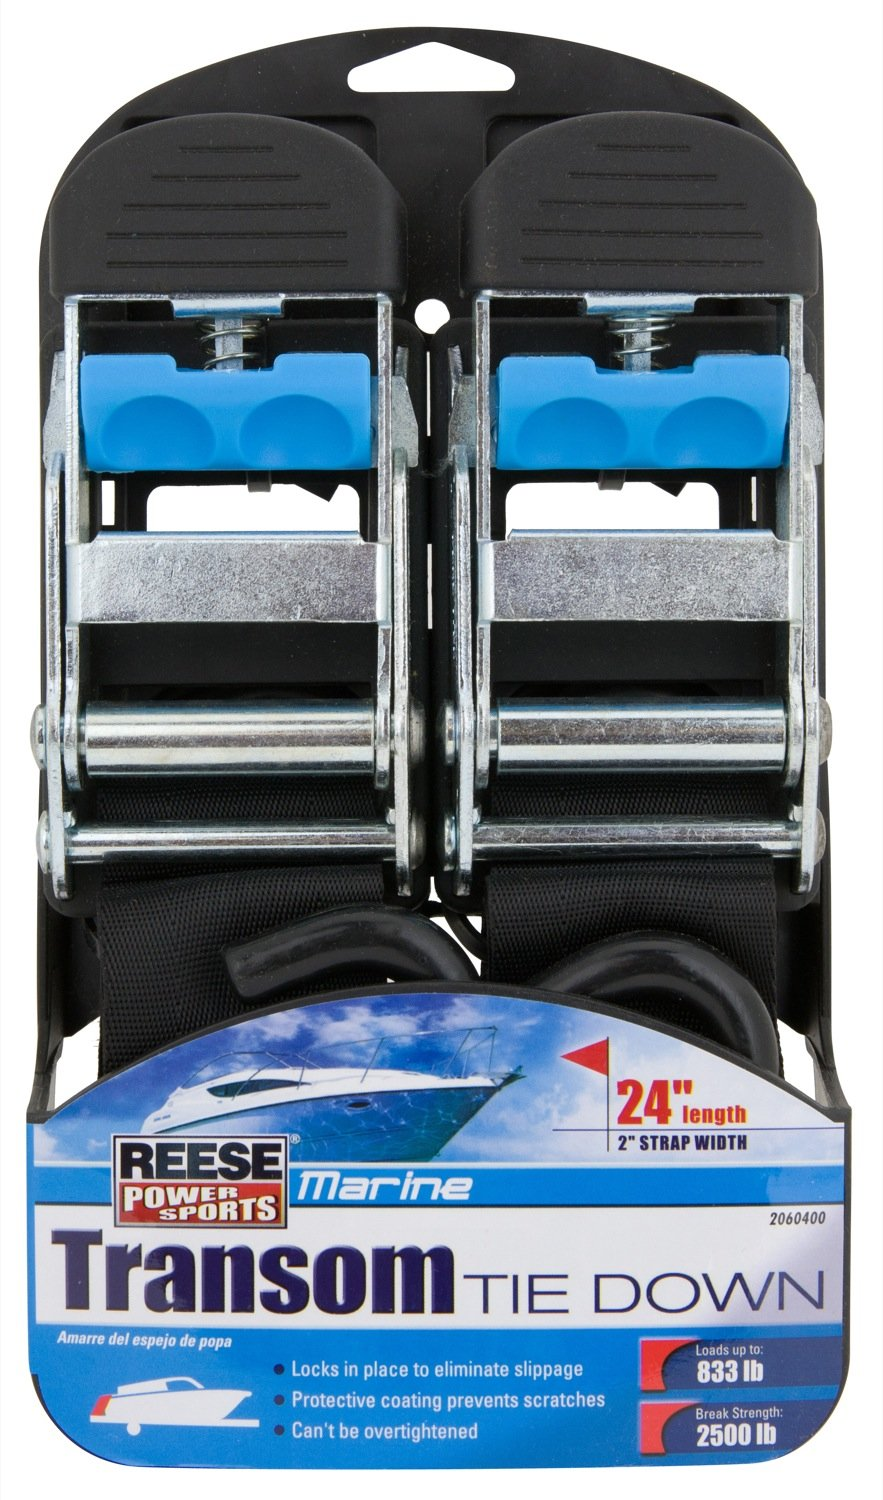 Reese Powersports (2060400) 24'' 2-Piece Transom Tie Down by Reese Powersports (Image #1)